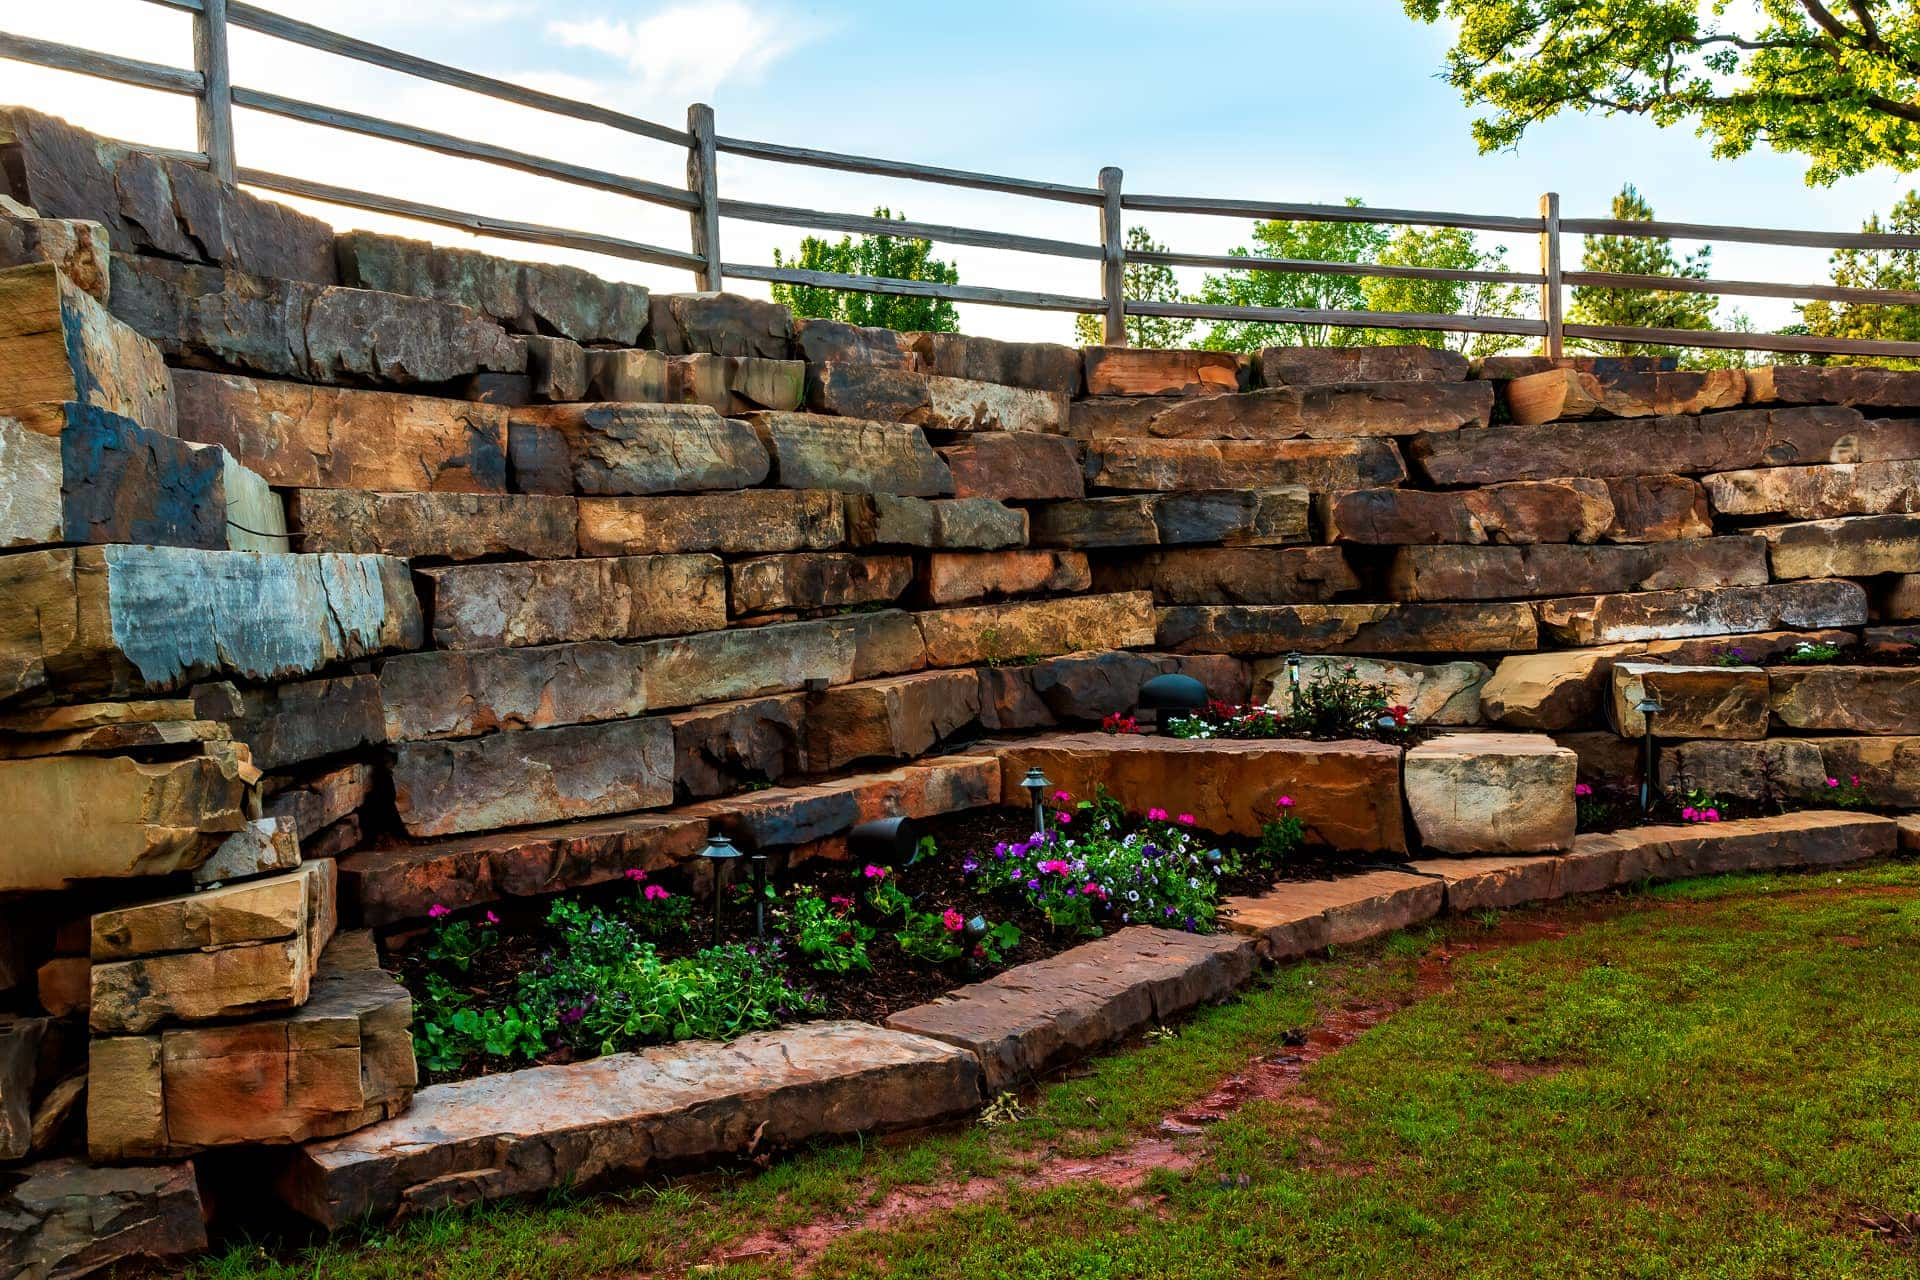 Cascading Rocks and Hi-End Outdoor Speakers at Esperanza Ranch